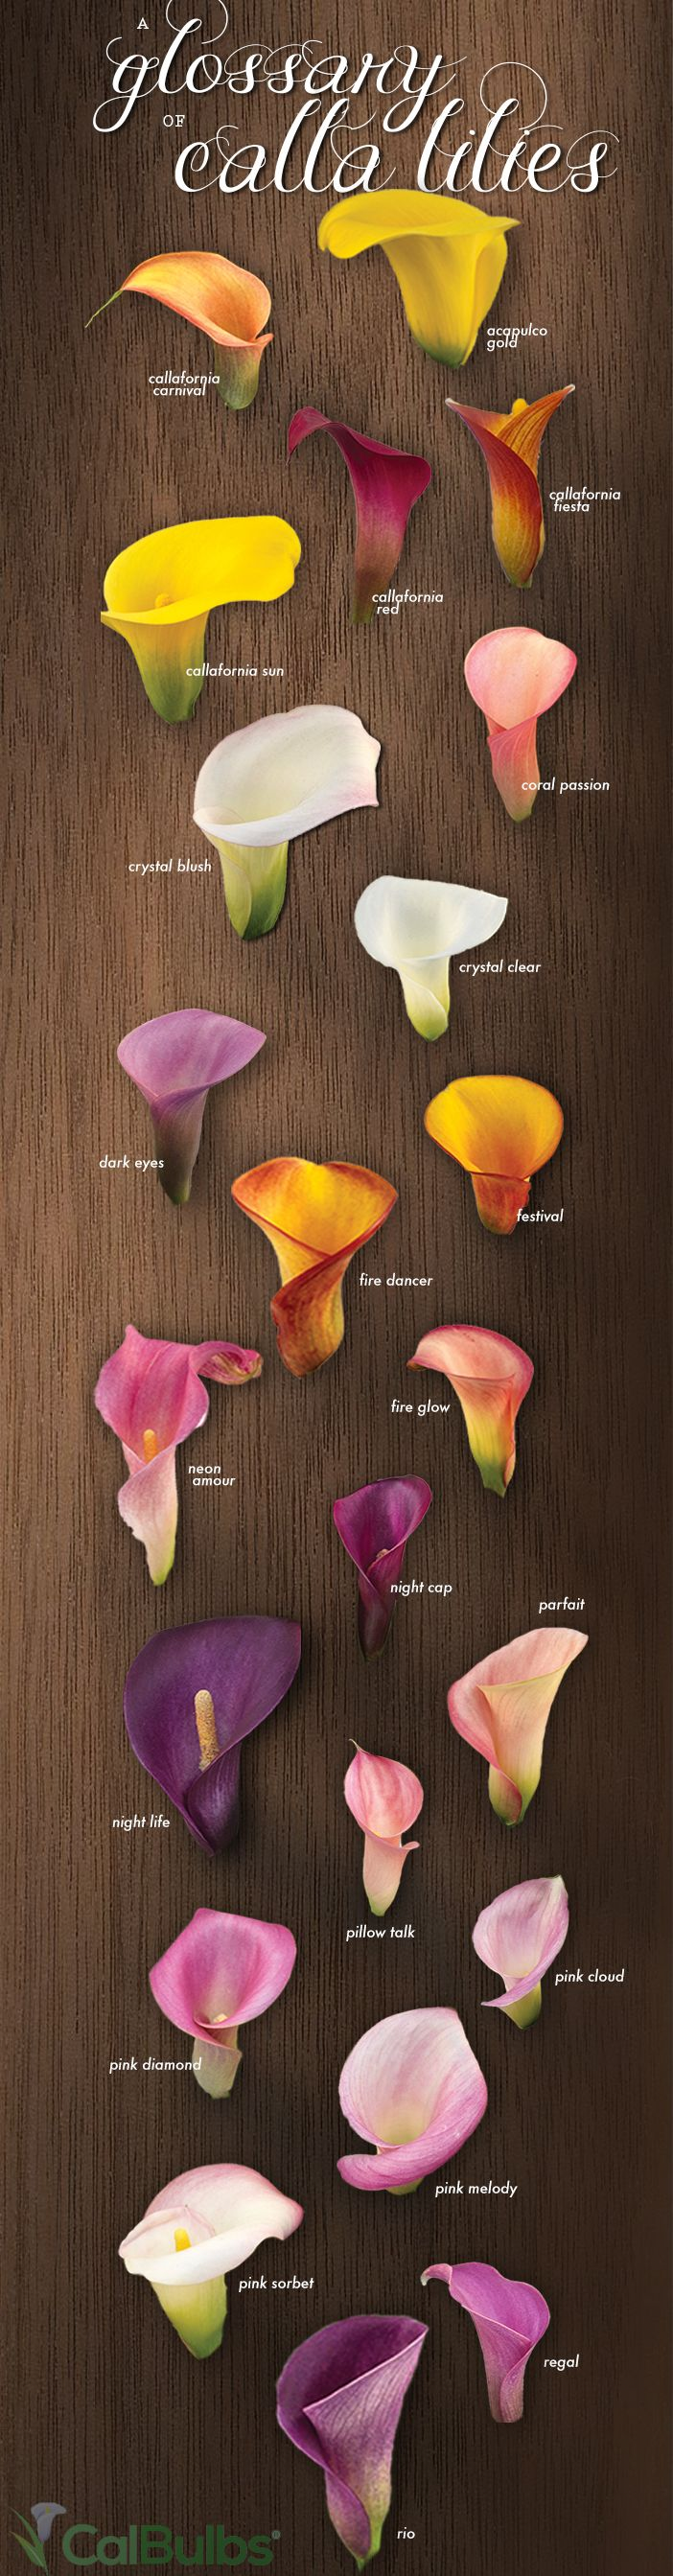 A Glossary of Calla Lilies - Calla Lily Colors Infograph! | CalBulbs.com